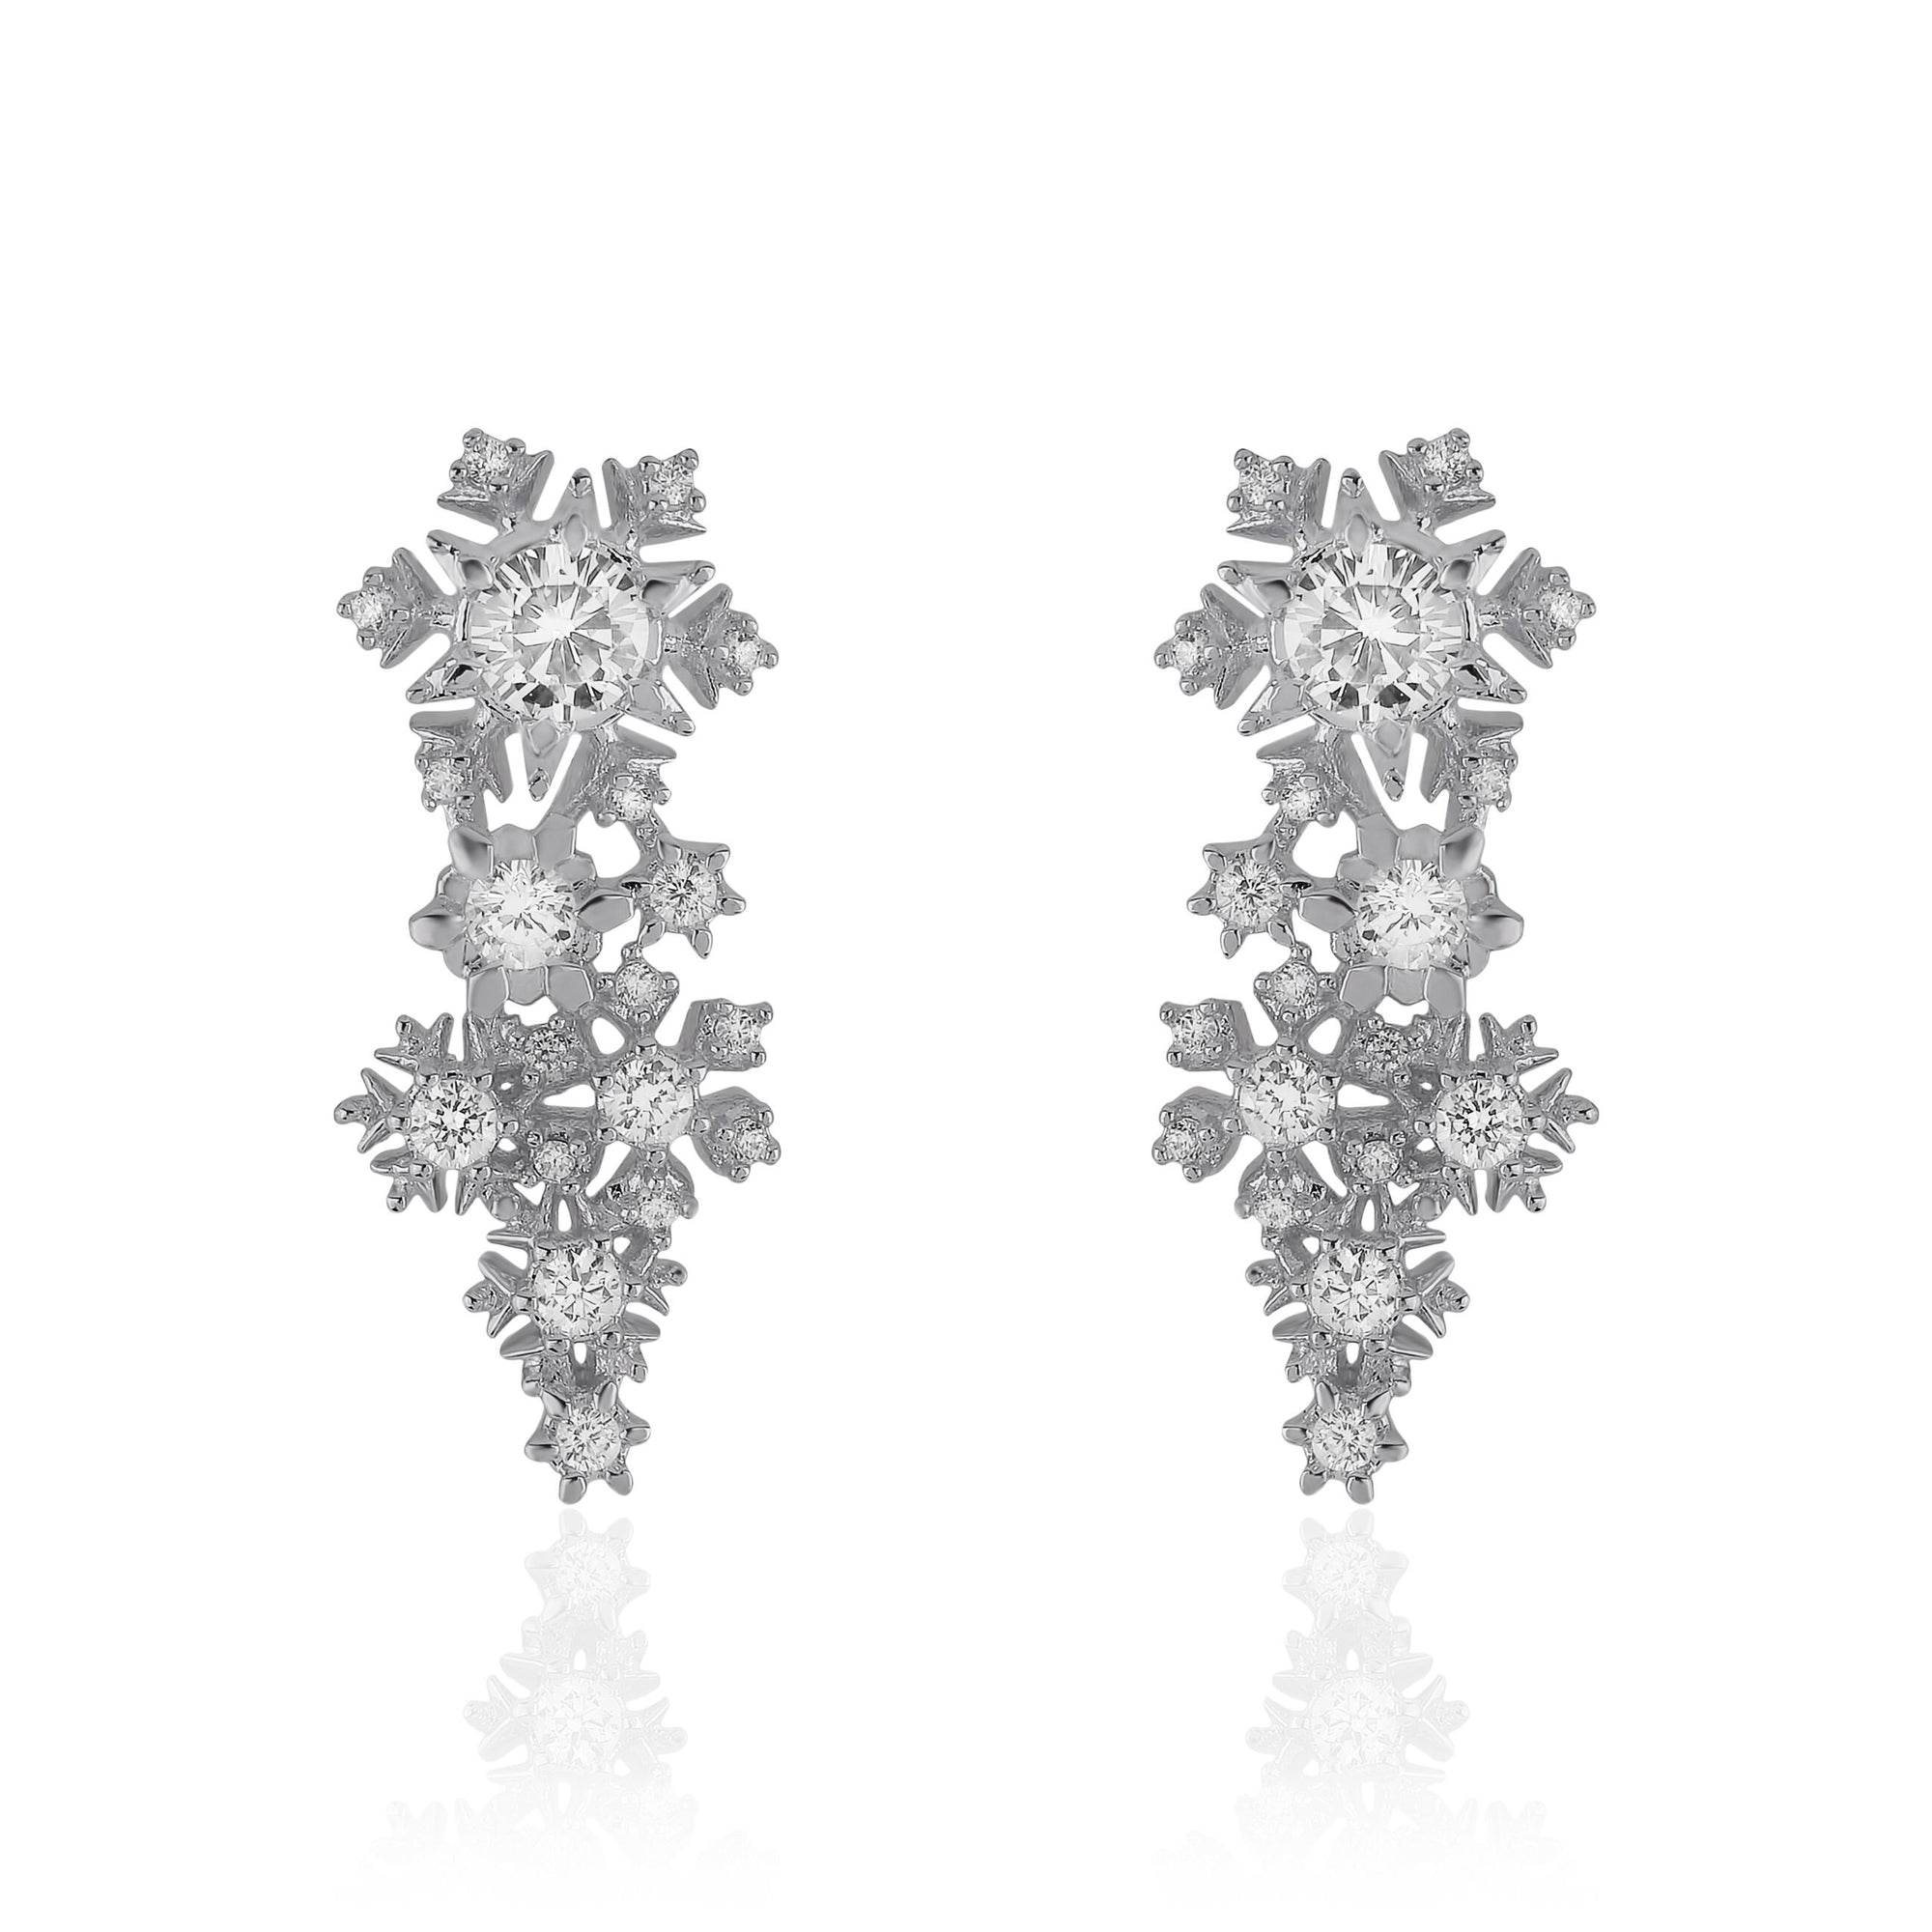 Tiny Snowfall Earrings